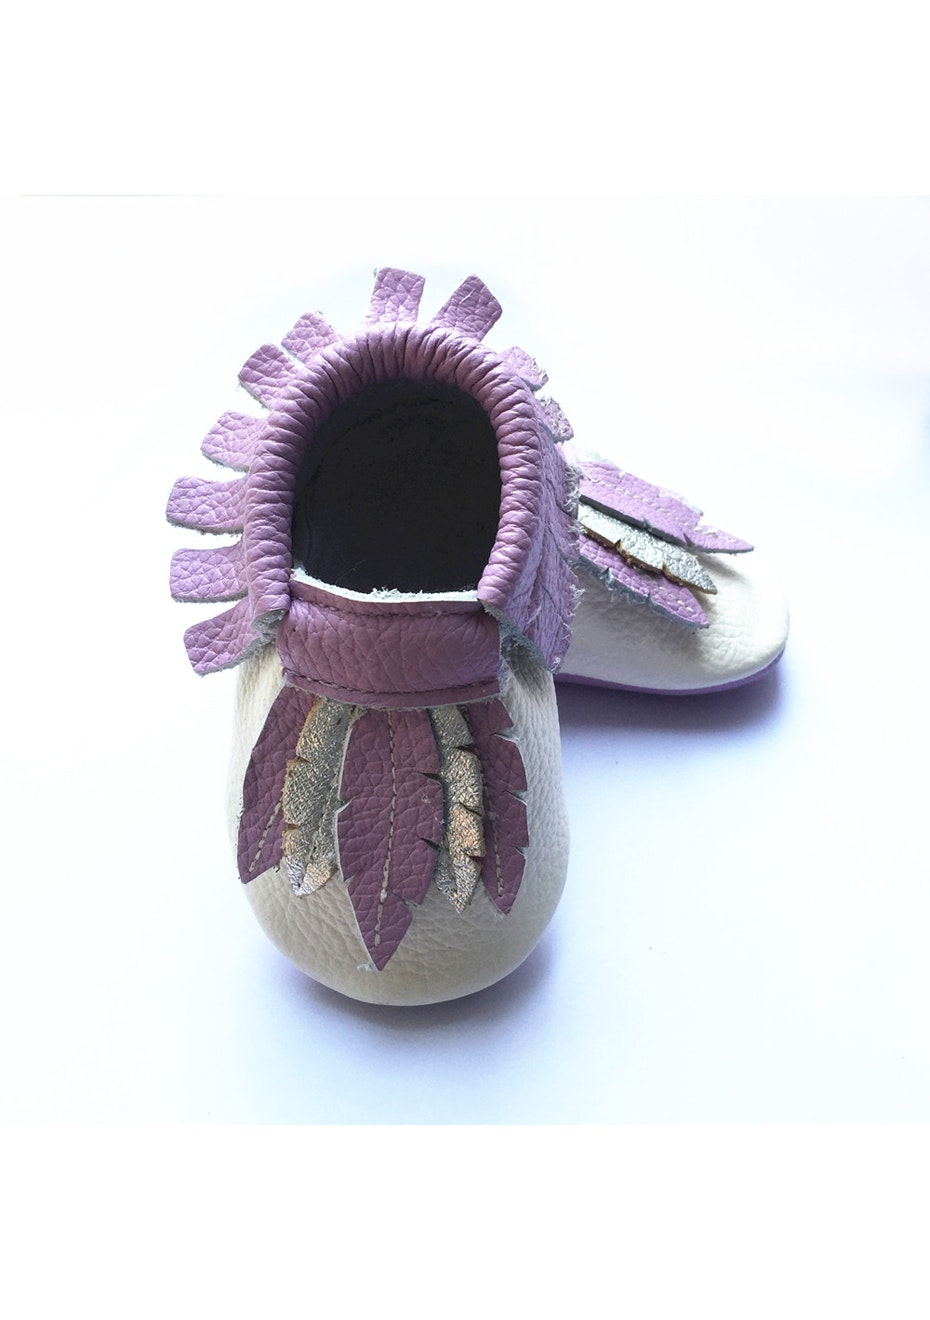 Baby  Leather Shoes - Lavendar/Beige/Silver